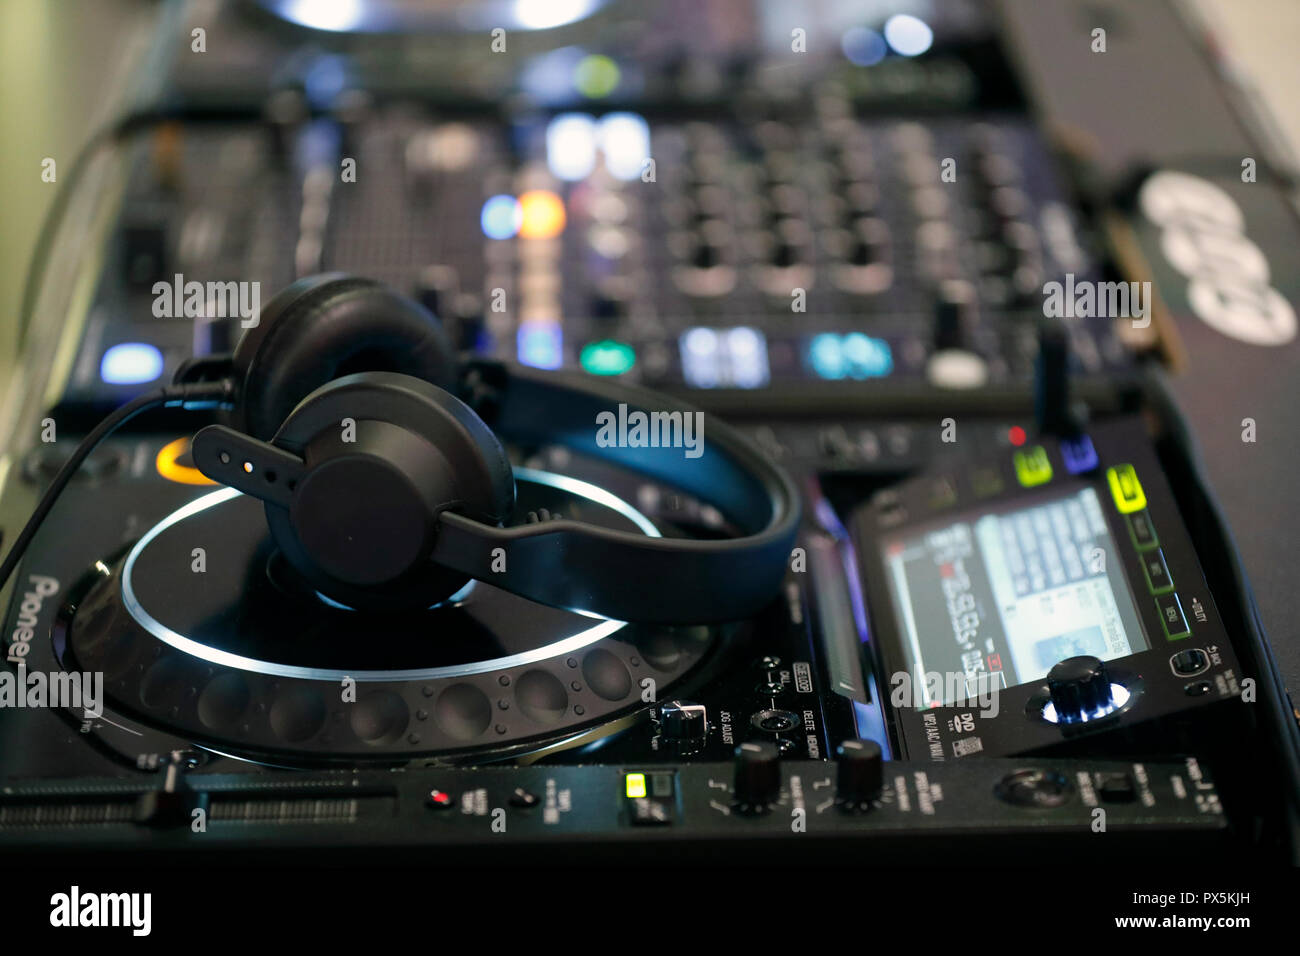 Remote and mixer DJ for music. France. - Stock Image